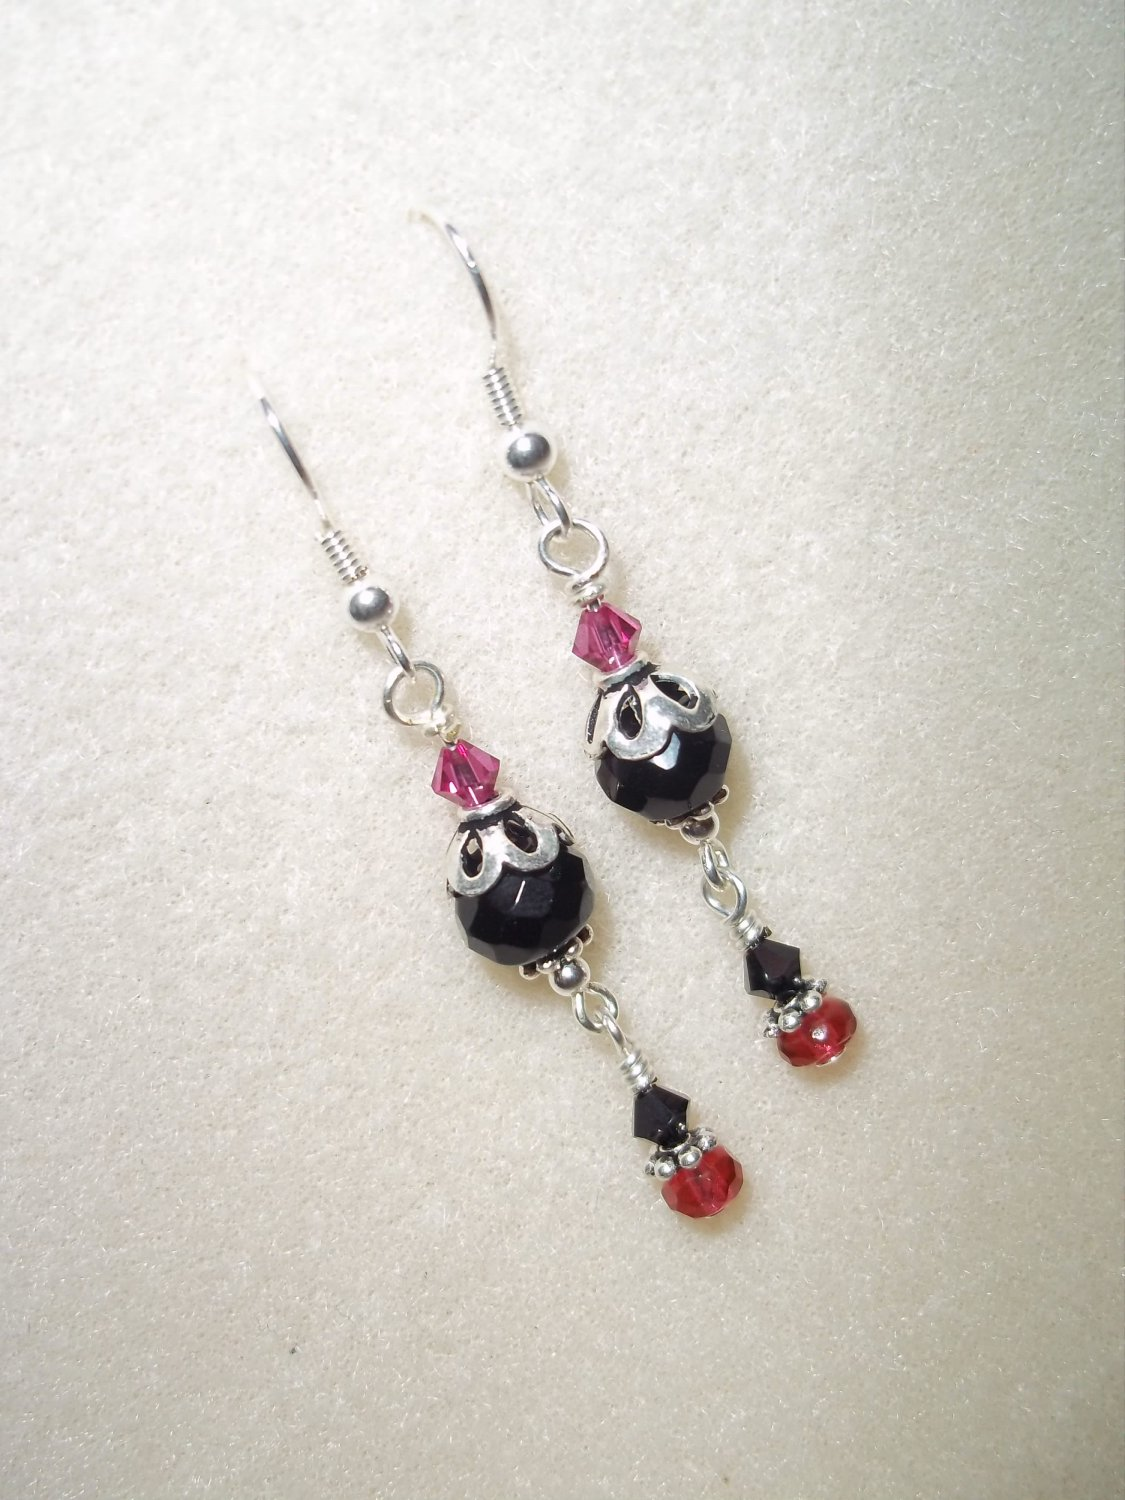 Handmade Black & Pink Earrings